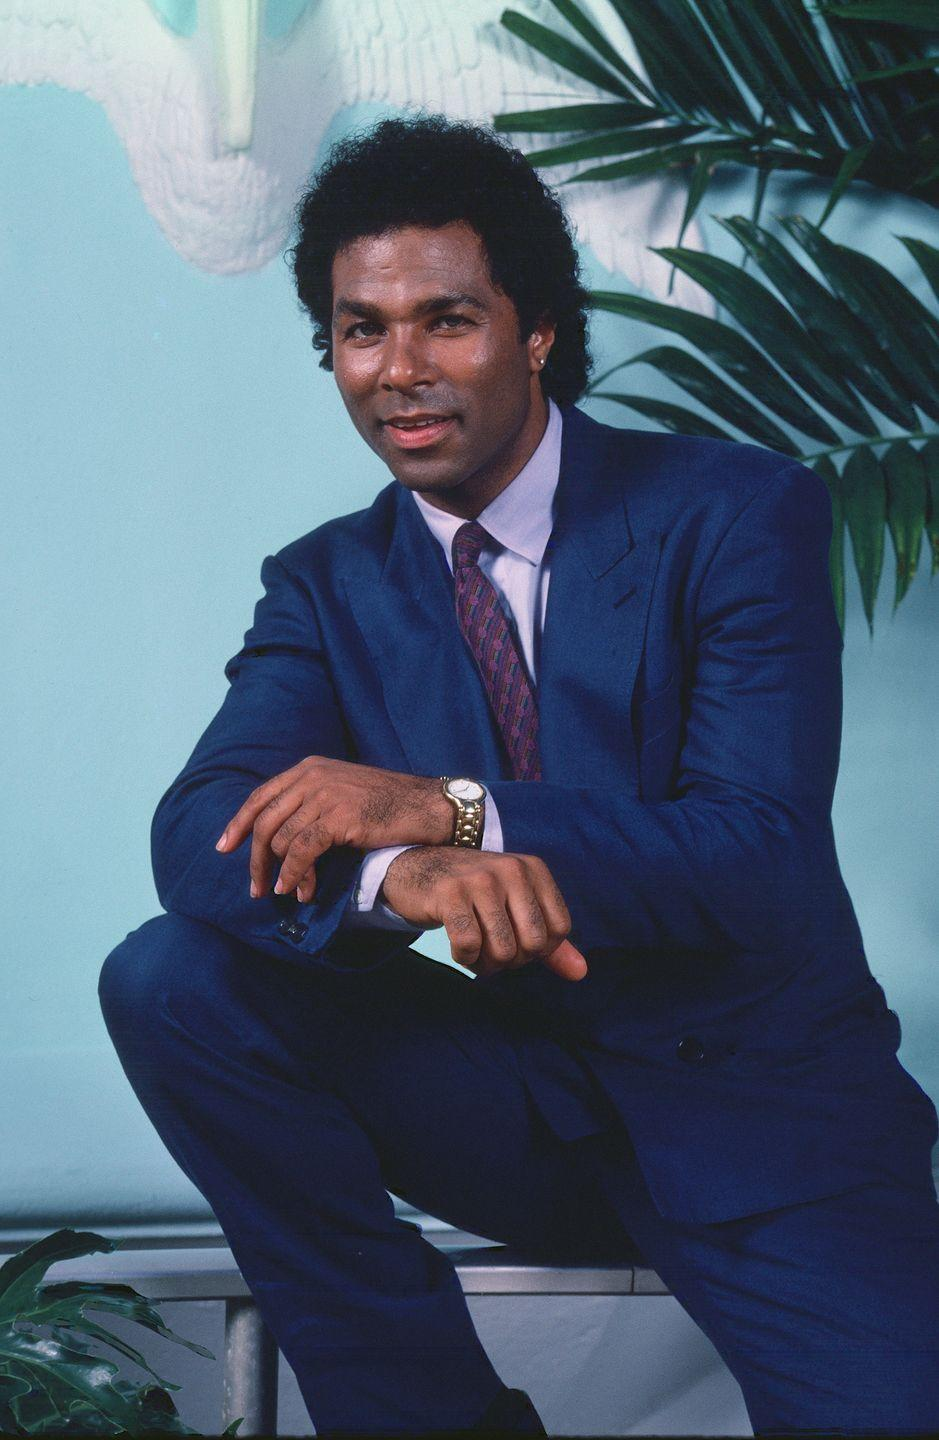 <p>Of all the iconic '80s shows, there's no doubt that <em>Miami Vice</em> had one of the hottest male duos on the small screen. Philip Michael Thomas, alongside his costar Don Johnson (more on him in a minute), led the sharply-dressed team as Detective Ricardo Tubbs.</p>